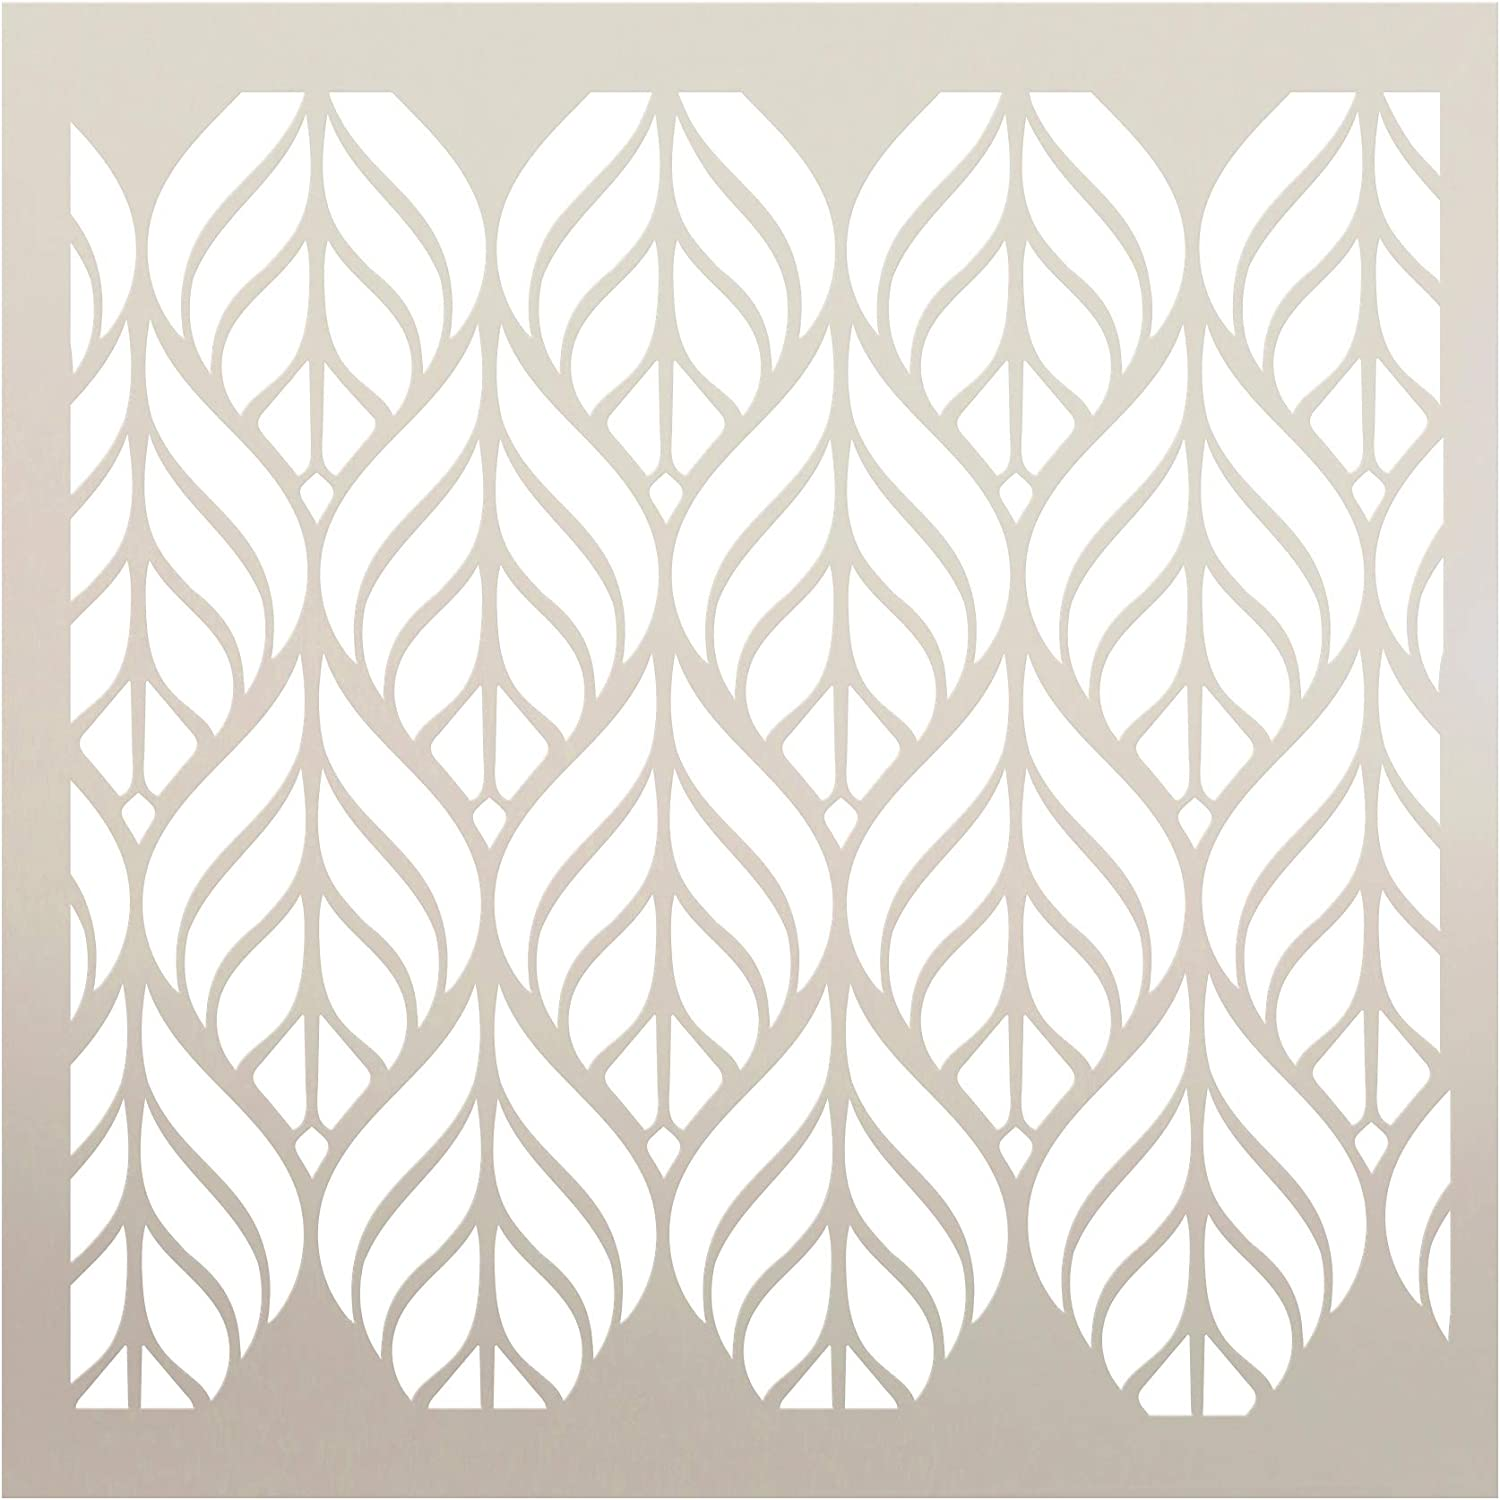 "Fun with Shapes Abstract Leaf Nature Stencil StudioR12 | Wood Sign | Reusable Mylar Template | Wall Decor | Multi Layering Art Project | Journal Art Deco | DIY Home - Choose (6"" x 6"")"